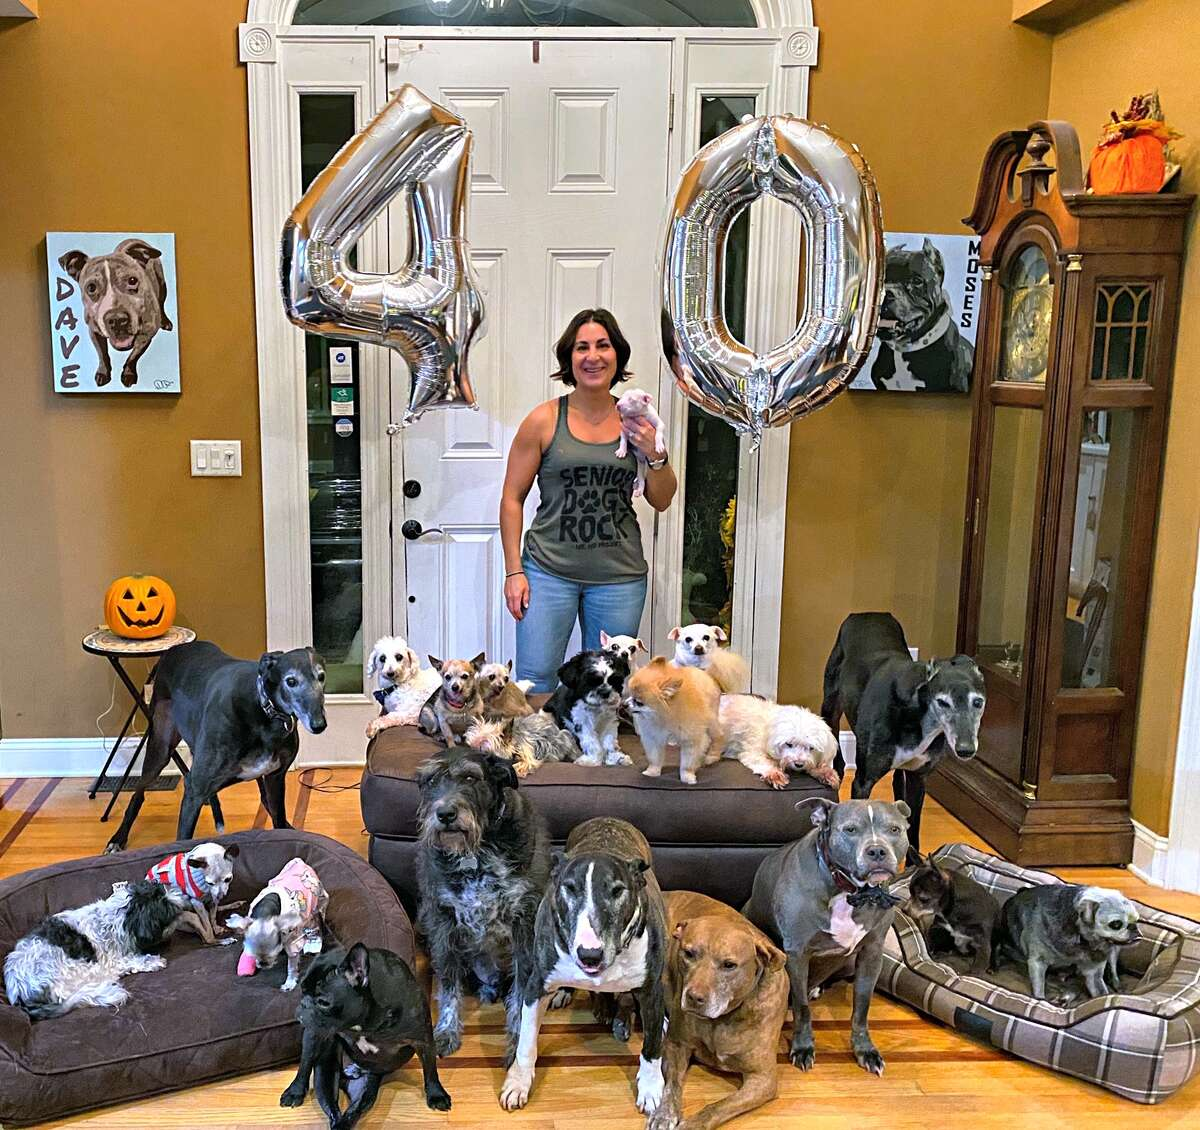 1. Our house has been the final resting place for 33 senior dogs over the last few years.